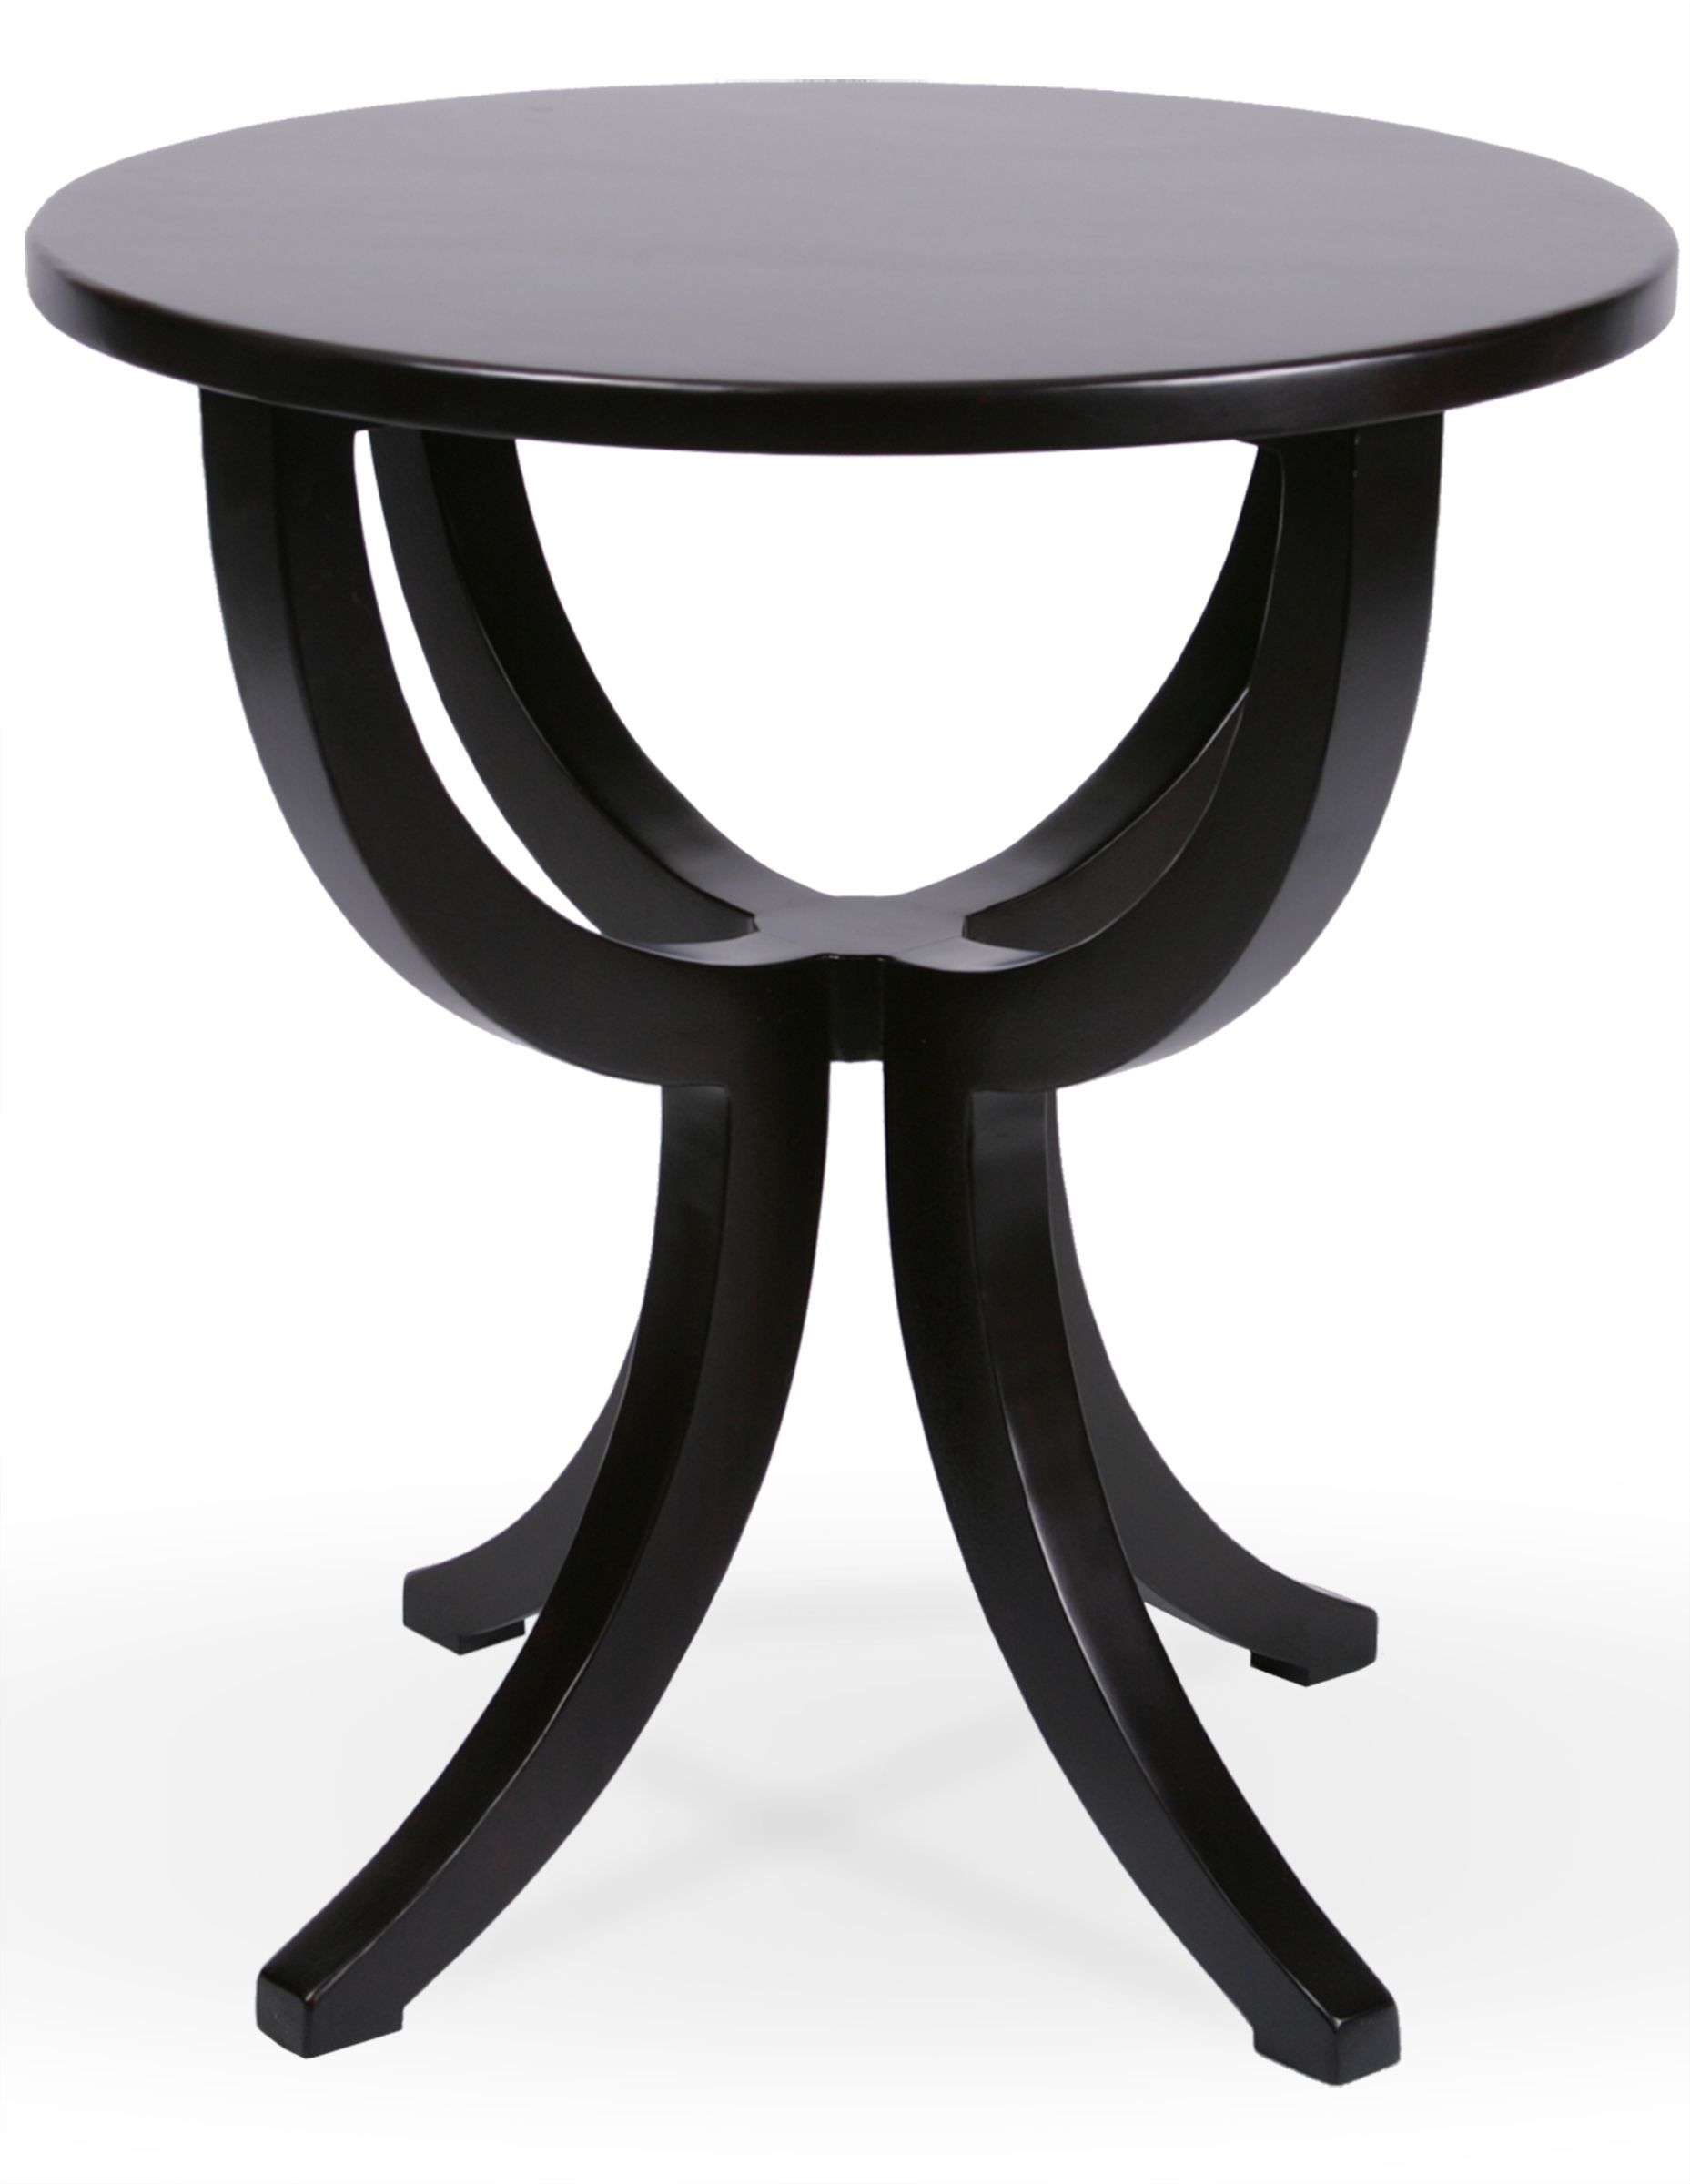 MacKenzieDow Fine Furniture Piccadilly Round Side Table Diameter - 26 high end table